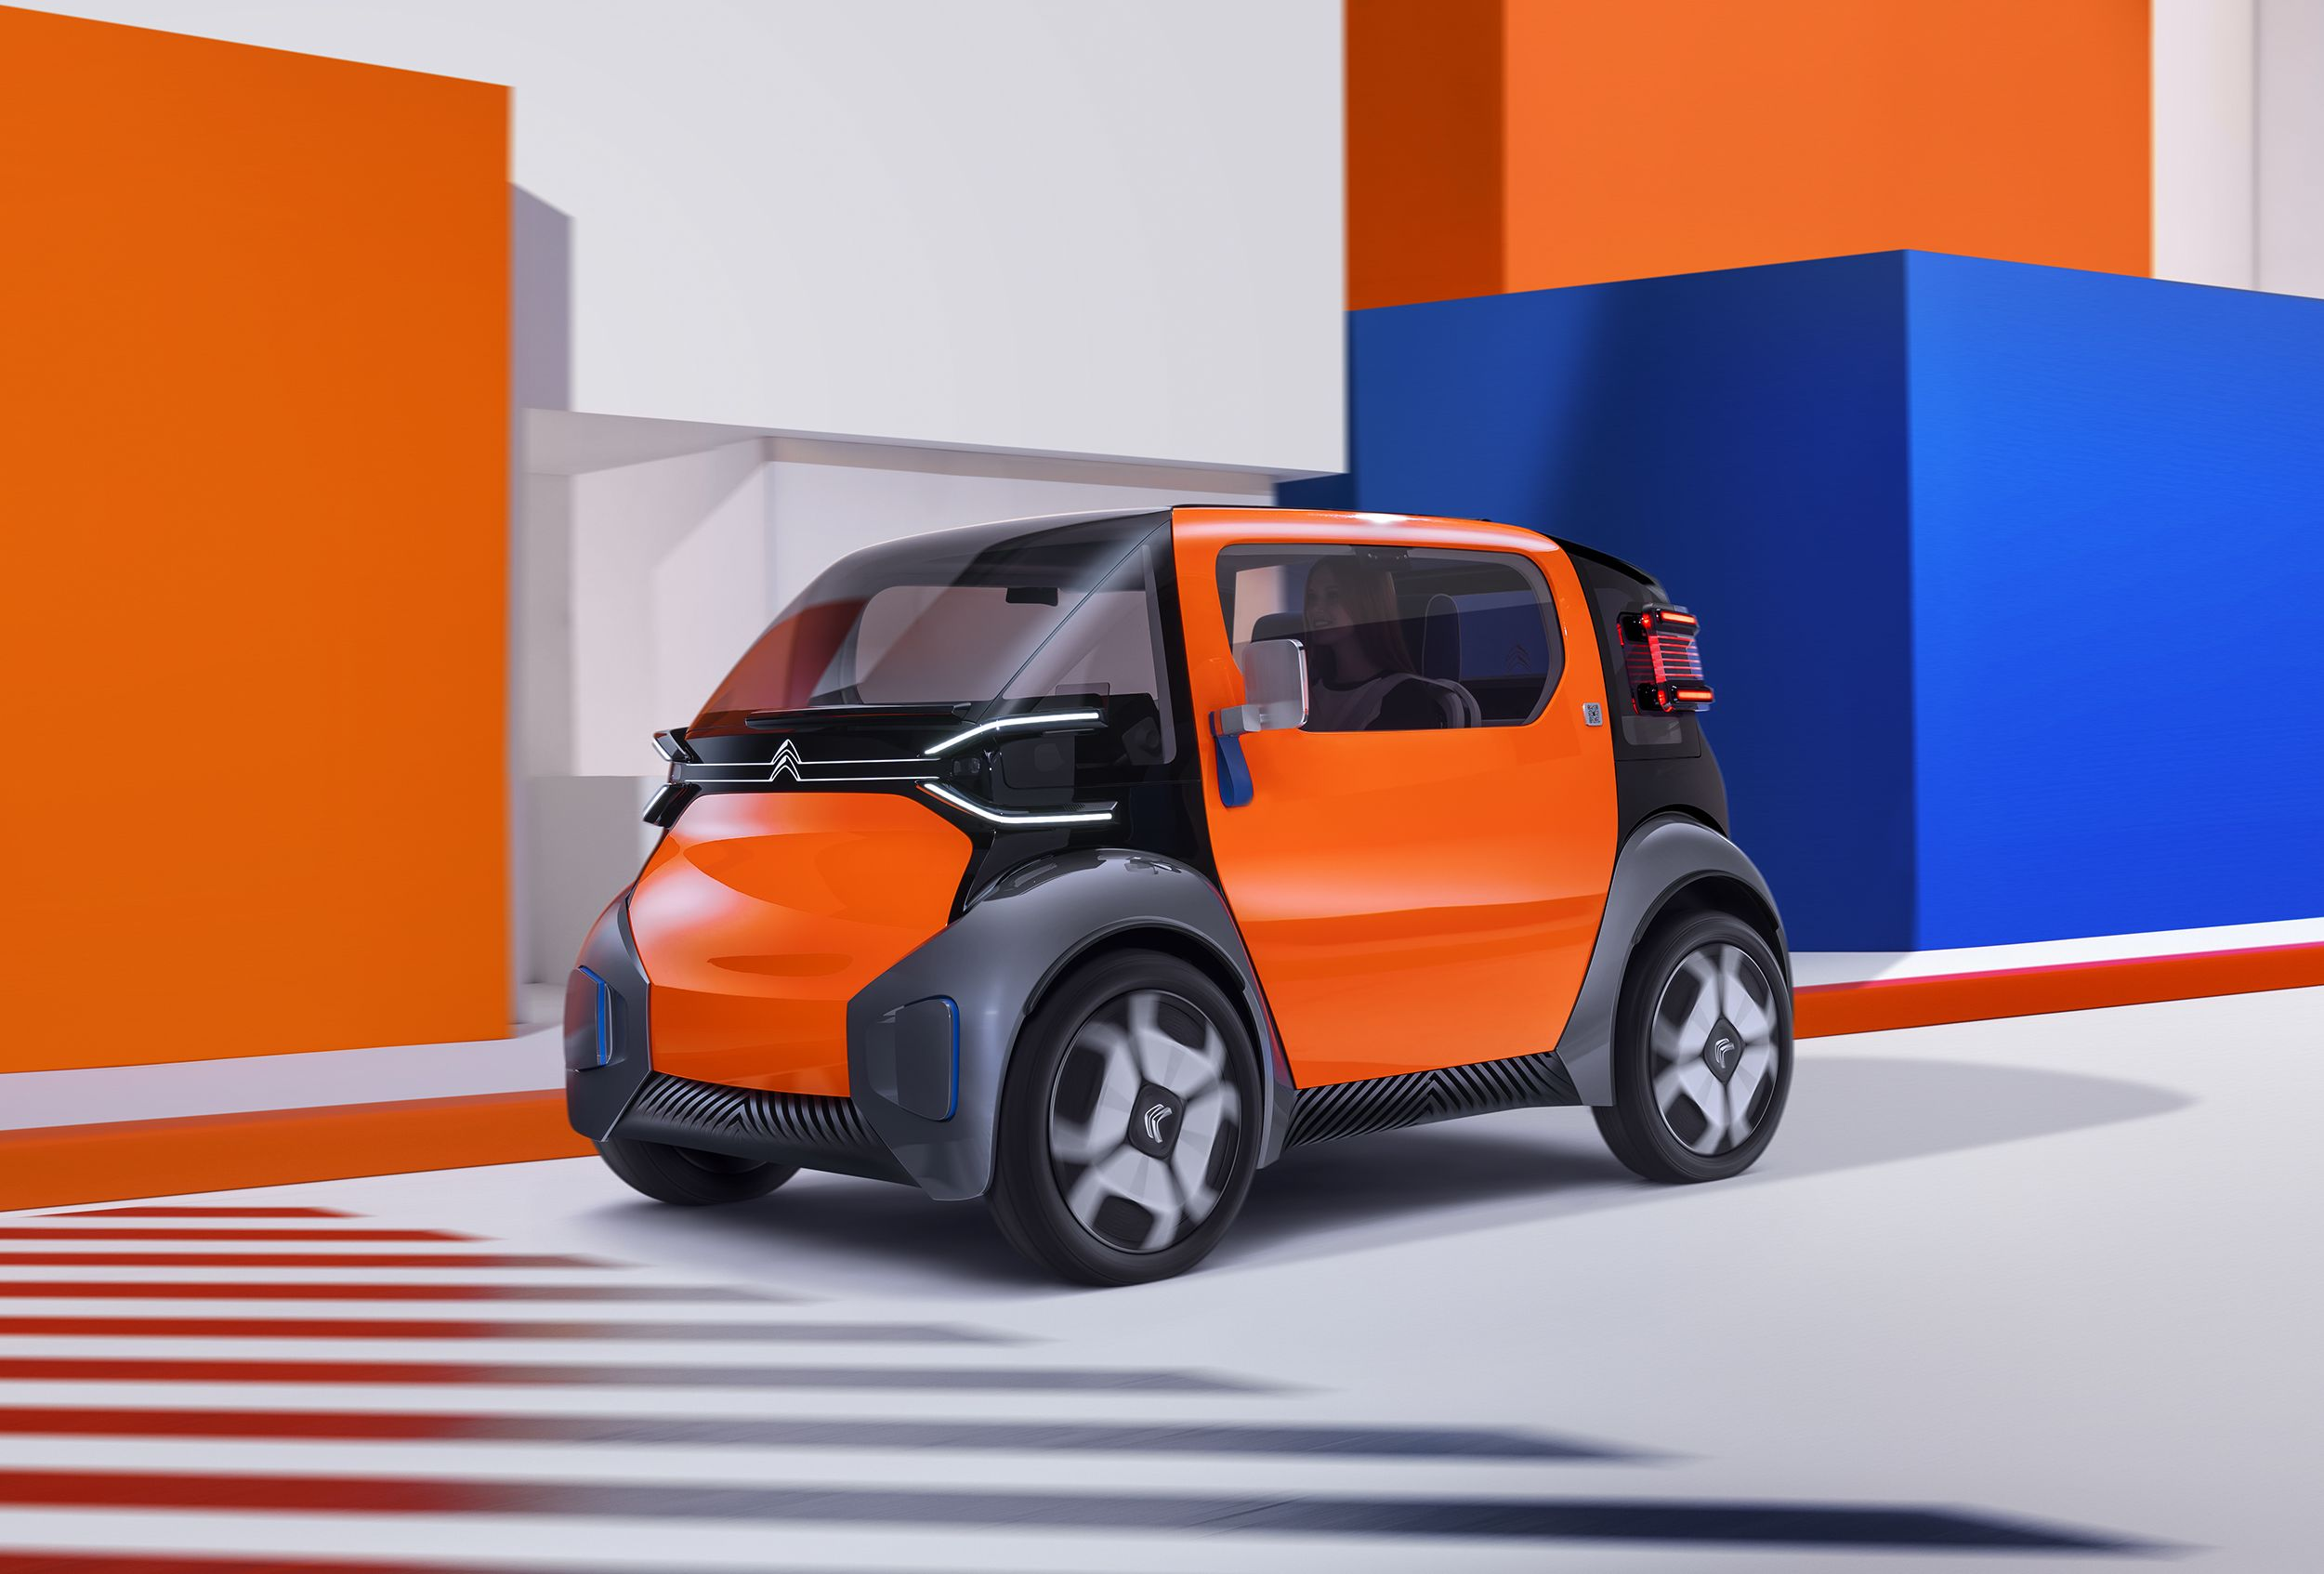 The Citroën Ami One Concept Is a Tiny City Car That Doesn't Require a License